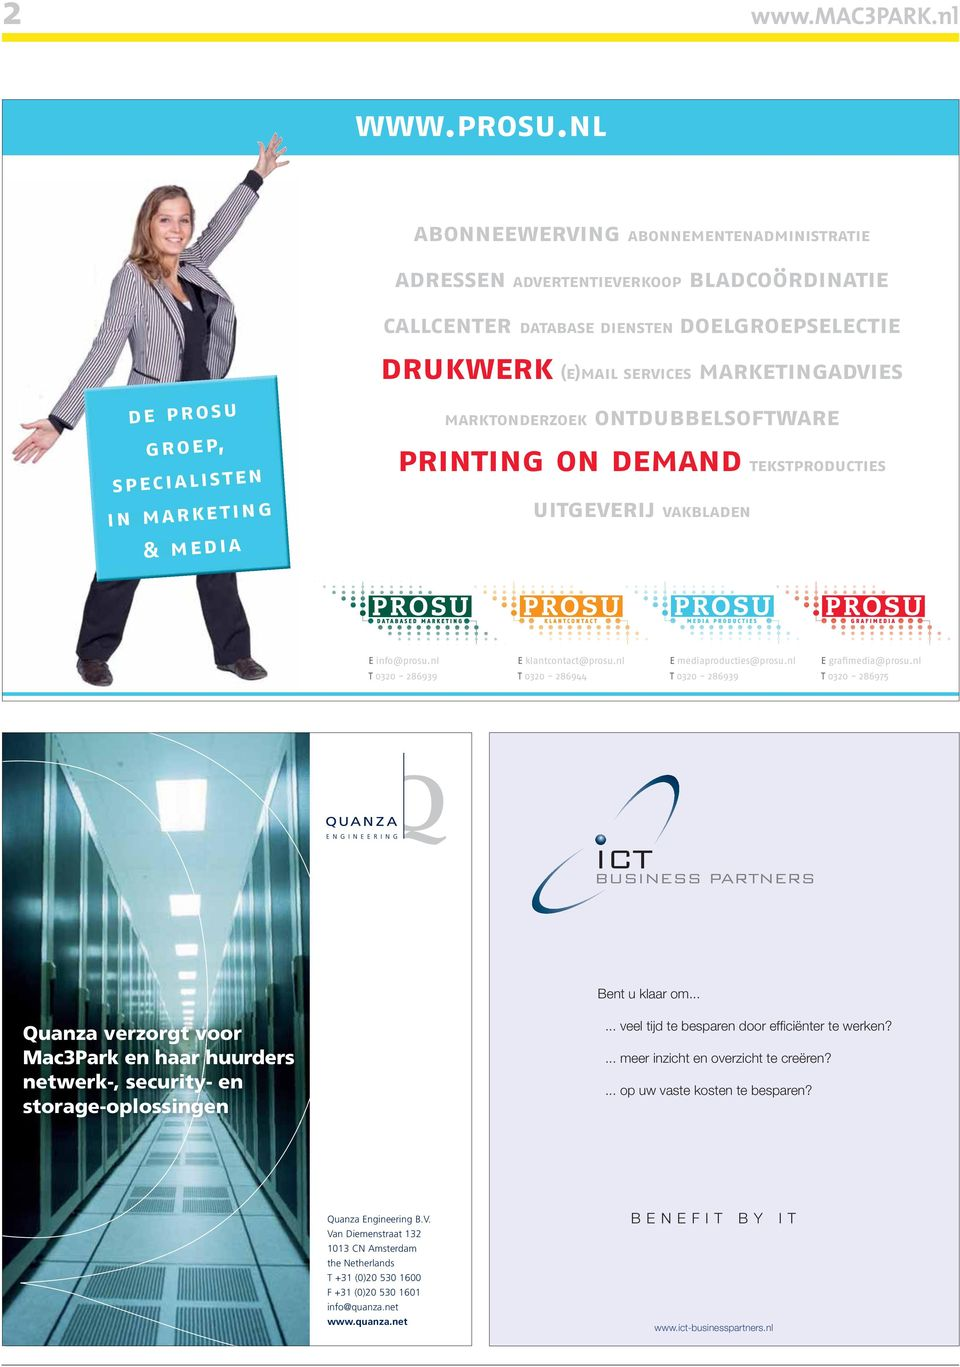 (e)mail services marketingadvies marktonderzoek ontdubbelsoftware printing on demand tekstproducties uitgeverij vakbladen DATABASED MARKETING KLANTCONTACT MEDIA PRODUCTIES GRAFIMEDIA E info@prosu.